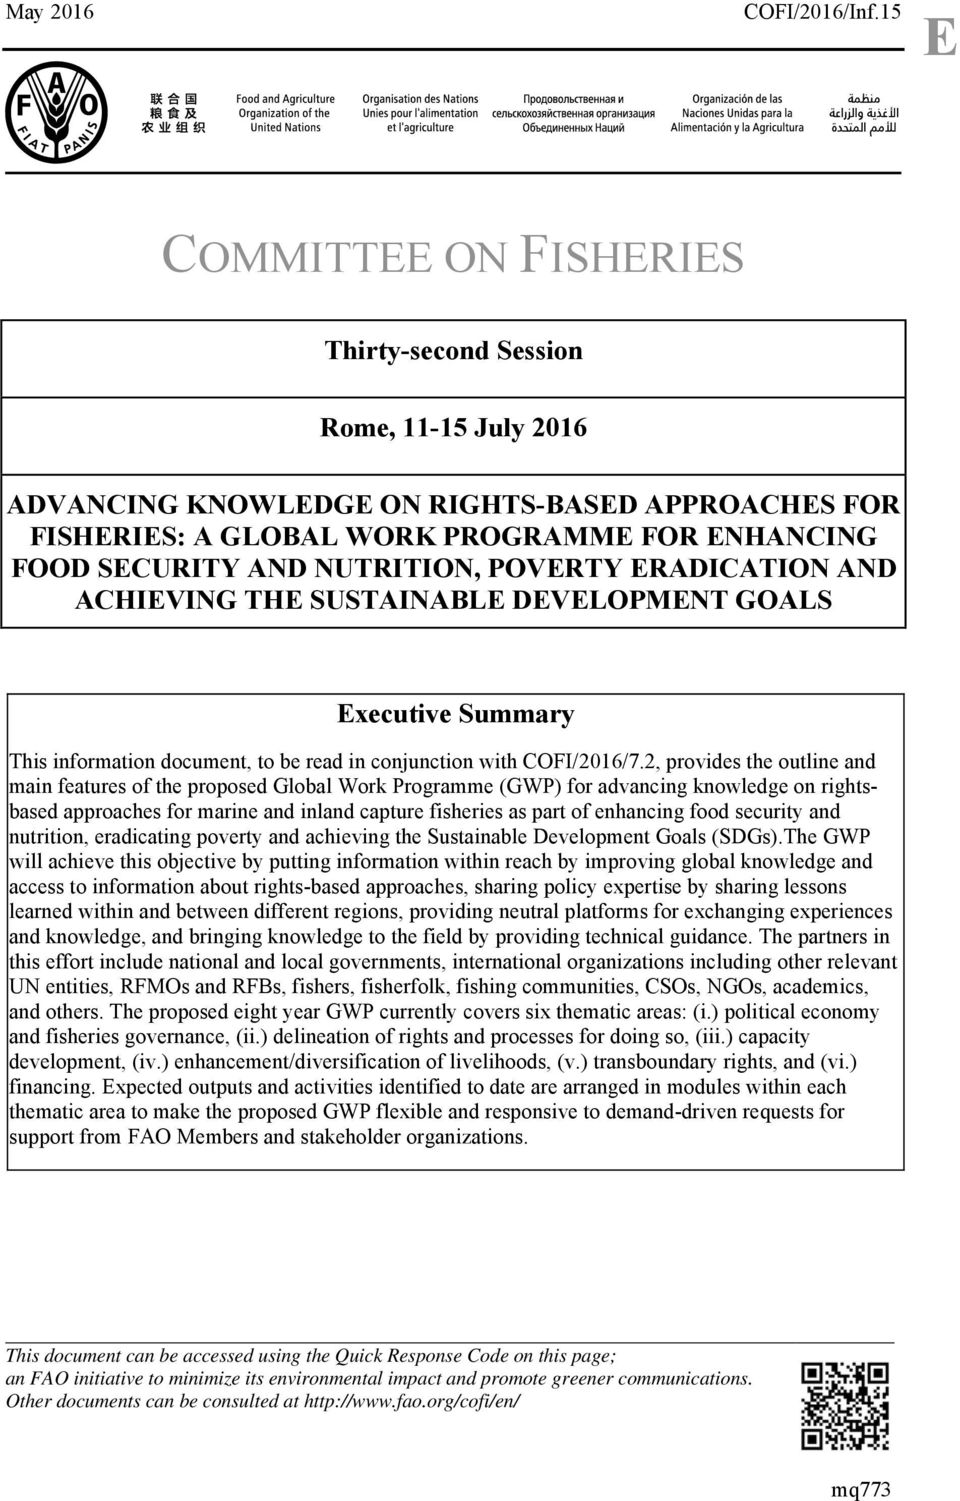 NUTRITION, POVERTY ERADICATION AND ACHIEVING THE SUSTAINABLE DEVELOPMENT GOALS Executive Summary This information document, to be read in conjunction with COFI/2016/7.